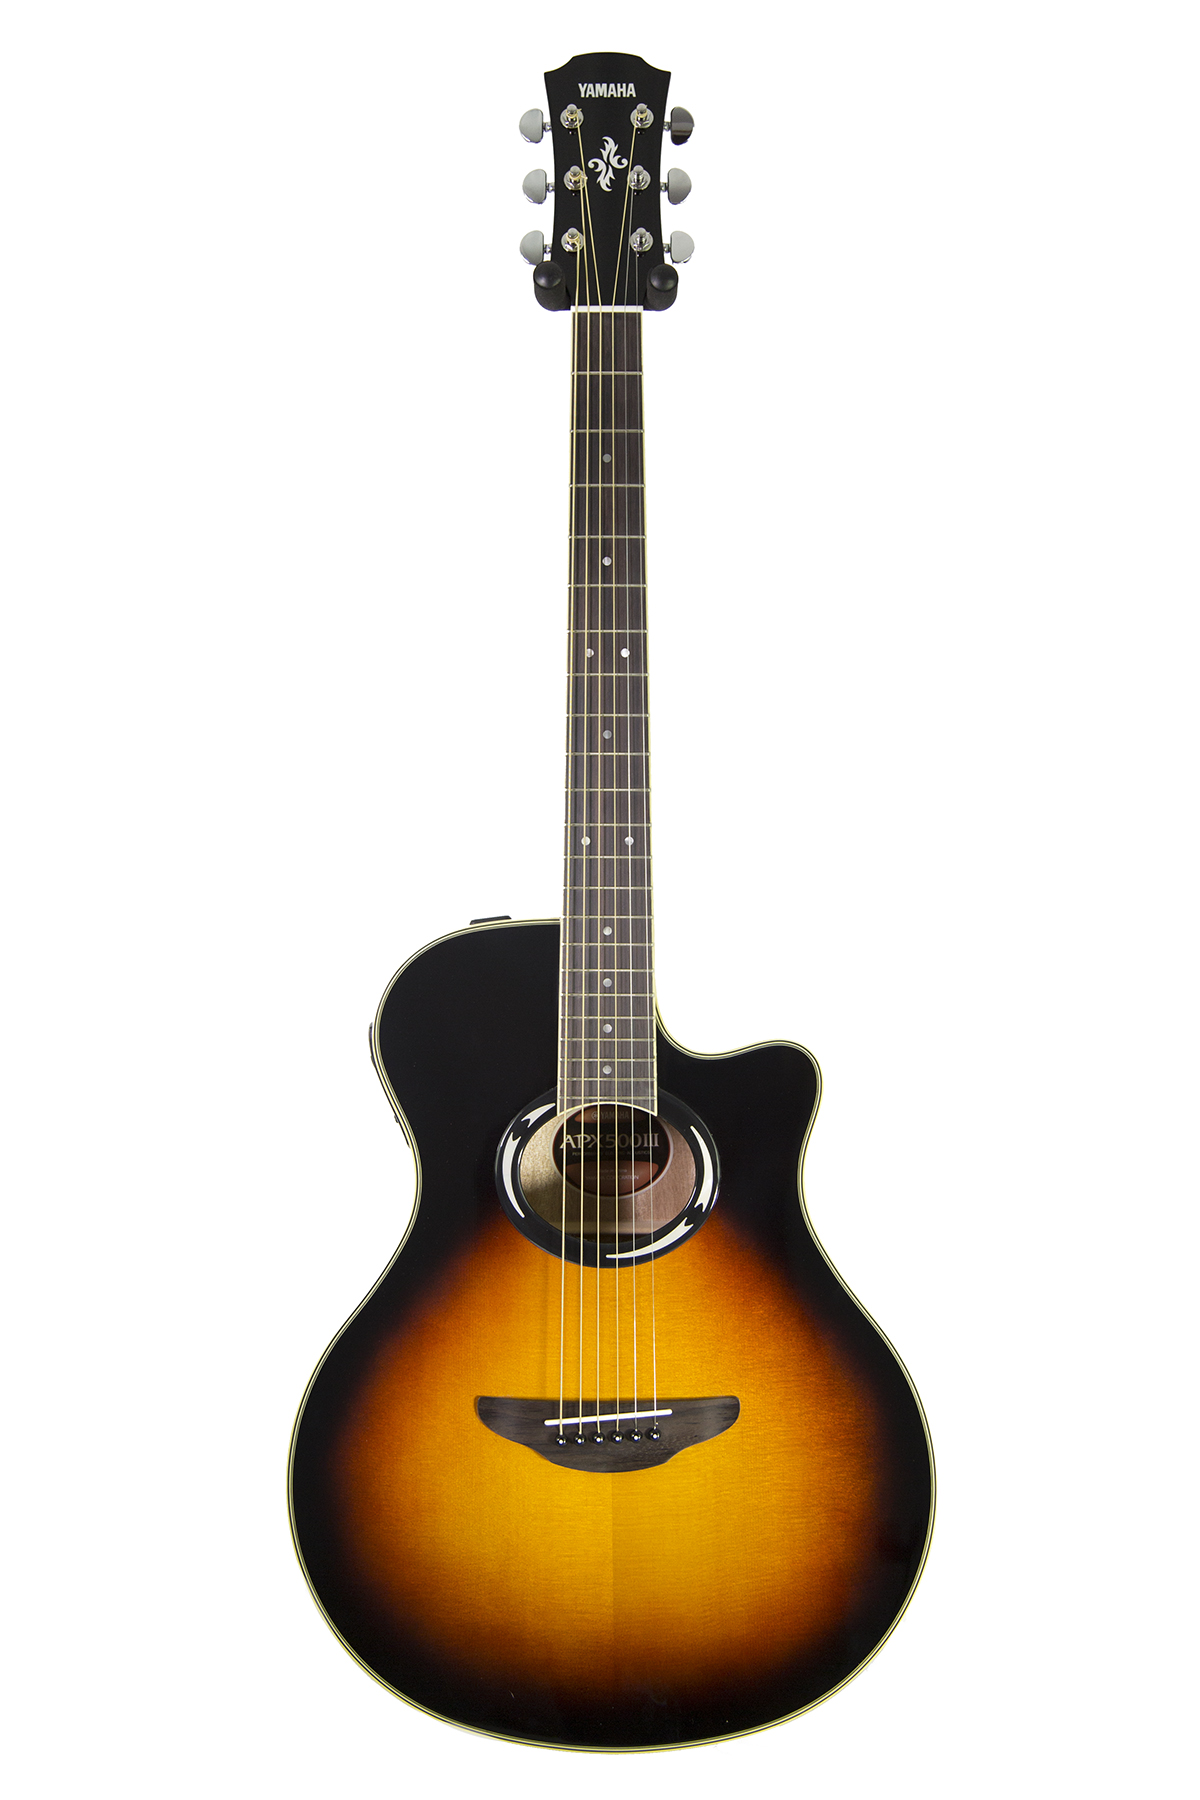 brand new yamaha apx500iii sunburst acoustic electric guitar new york music emporium. Black Bedroom Furniture Sets. Home Design Ideas